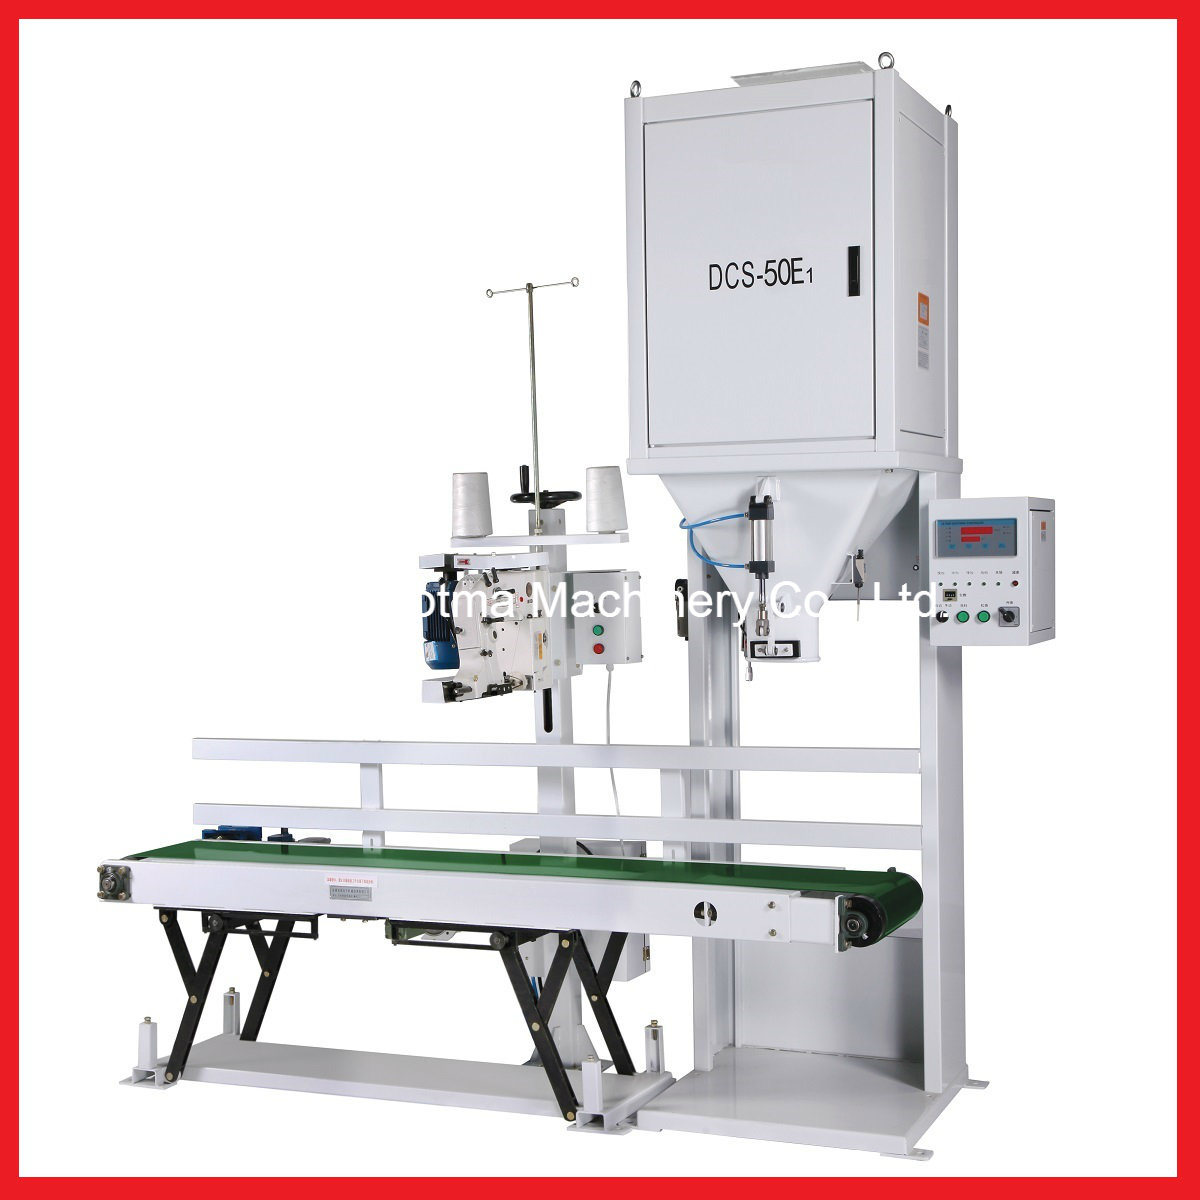 High Speed Automatic Packing Equipment, Electric Weighing and Packing Machine